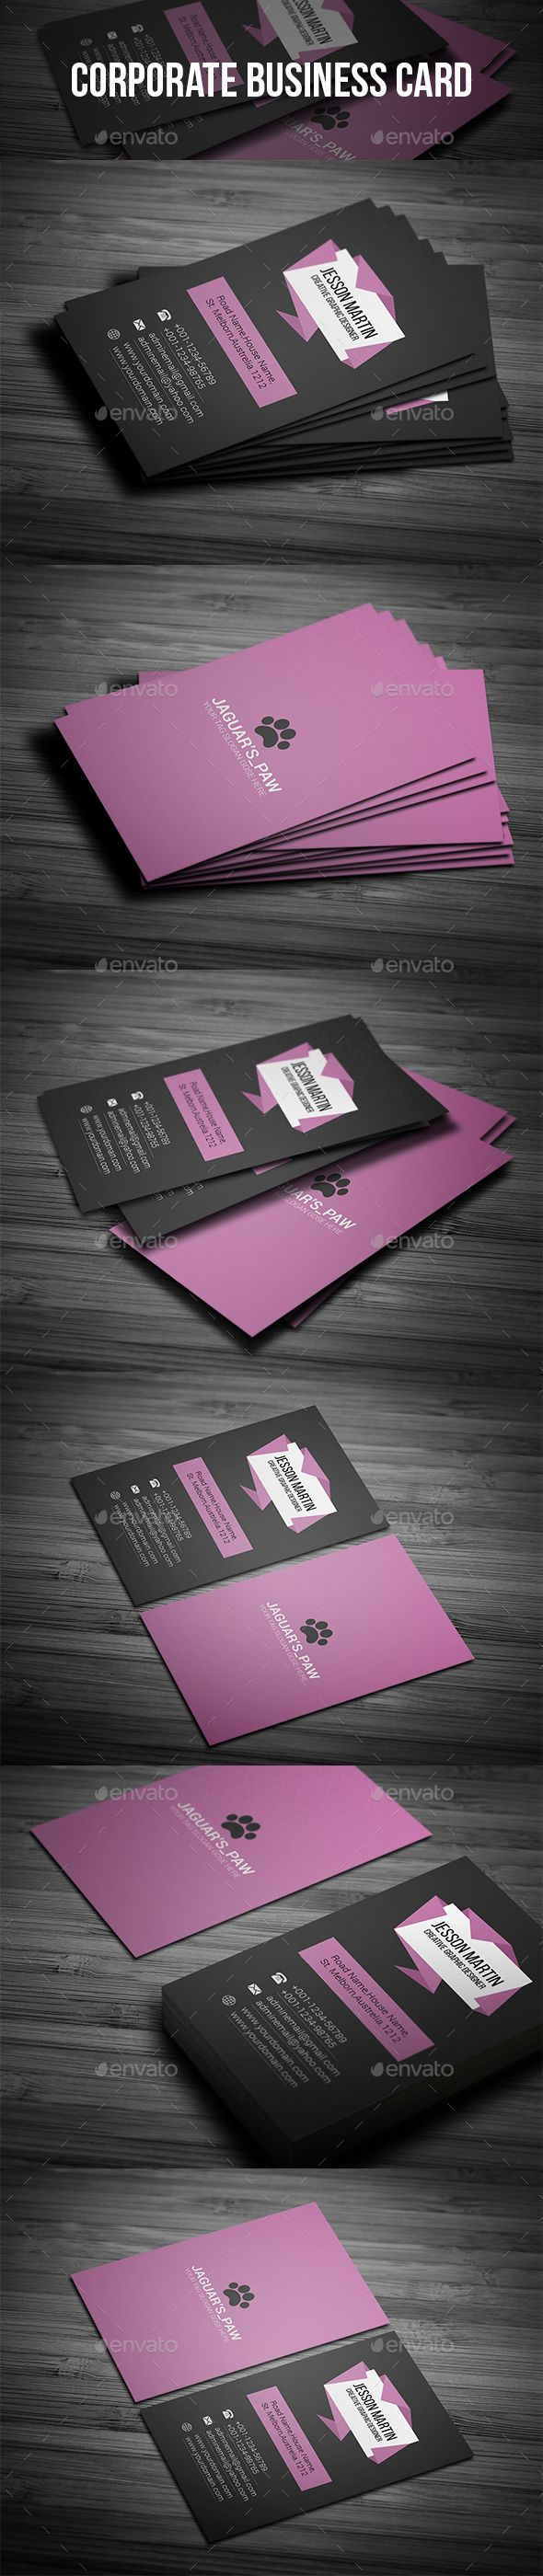 18 best Instant Business Cards images on Pinterest | Best ...